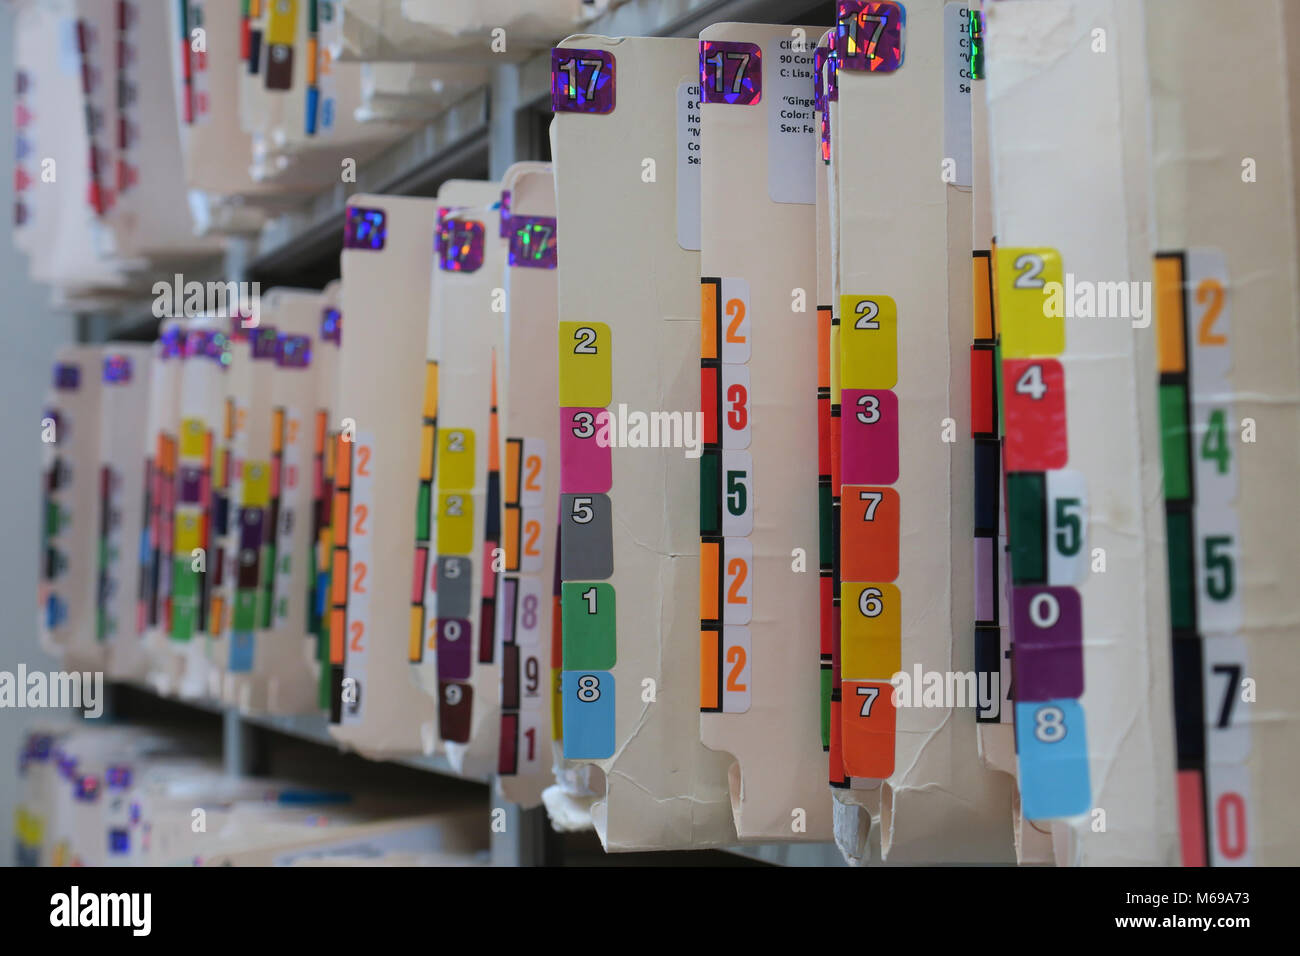 Medical records stored on a shelf - Stock Image